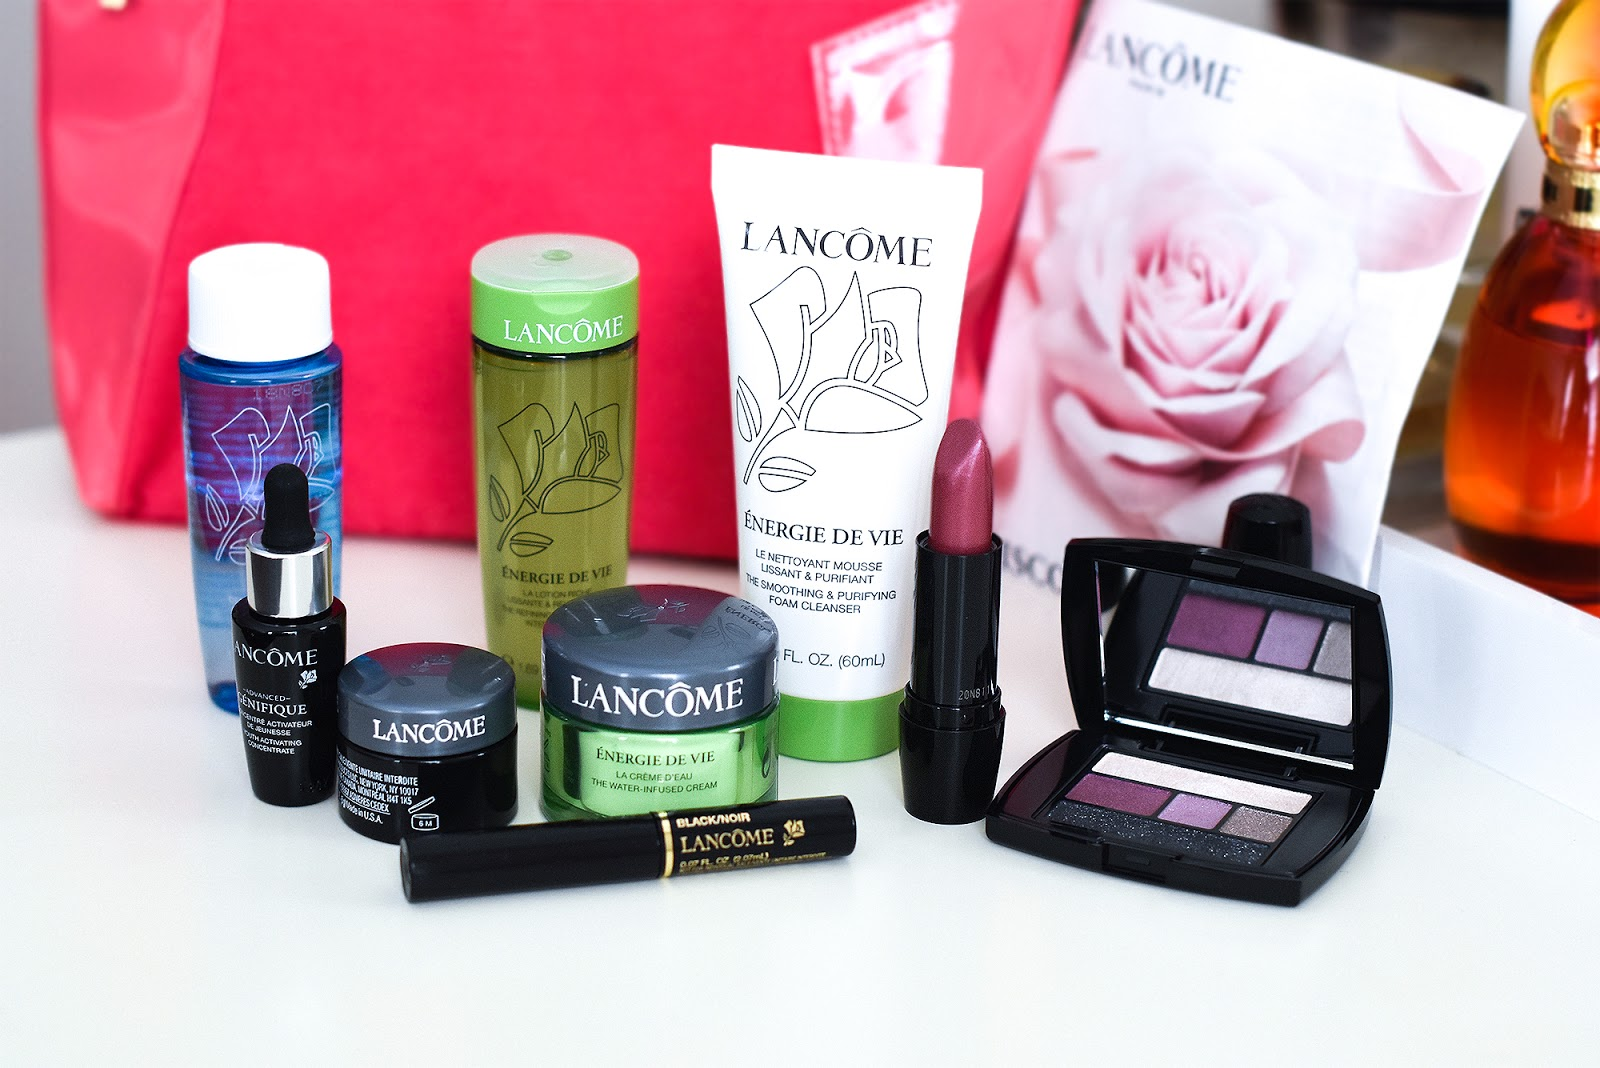 Lancome Cosmetic Bag Advanced Genifique Youth Activating Concentrate Definicils Mascara (this is one of my favorite mascaras) Bi-Facial Eye Makeup Remover Energie de Vie Day Cream Eyeshadow Palette Lipstick Genifique Yeux Youth Activating Eye Concentrate Energie De Vie Cleanser & Toner